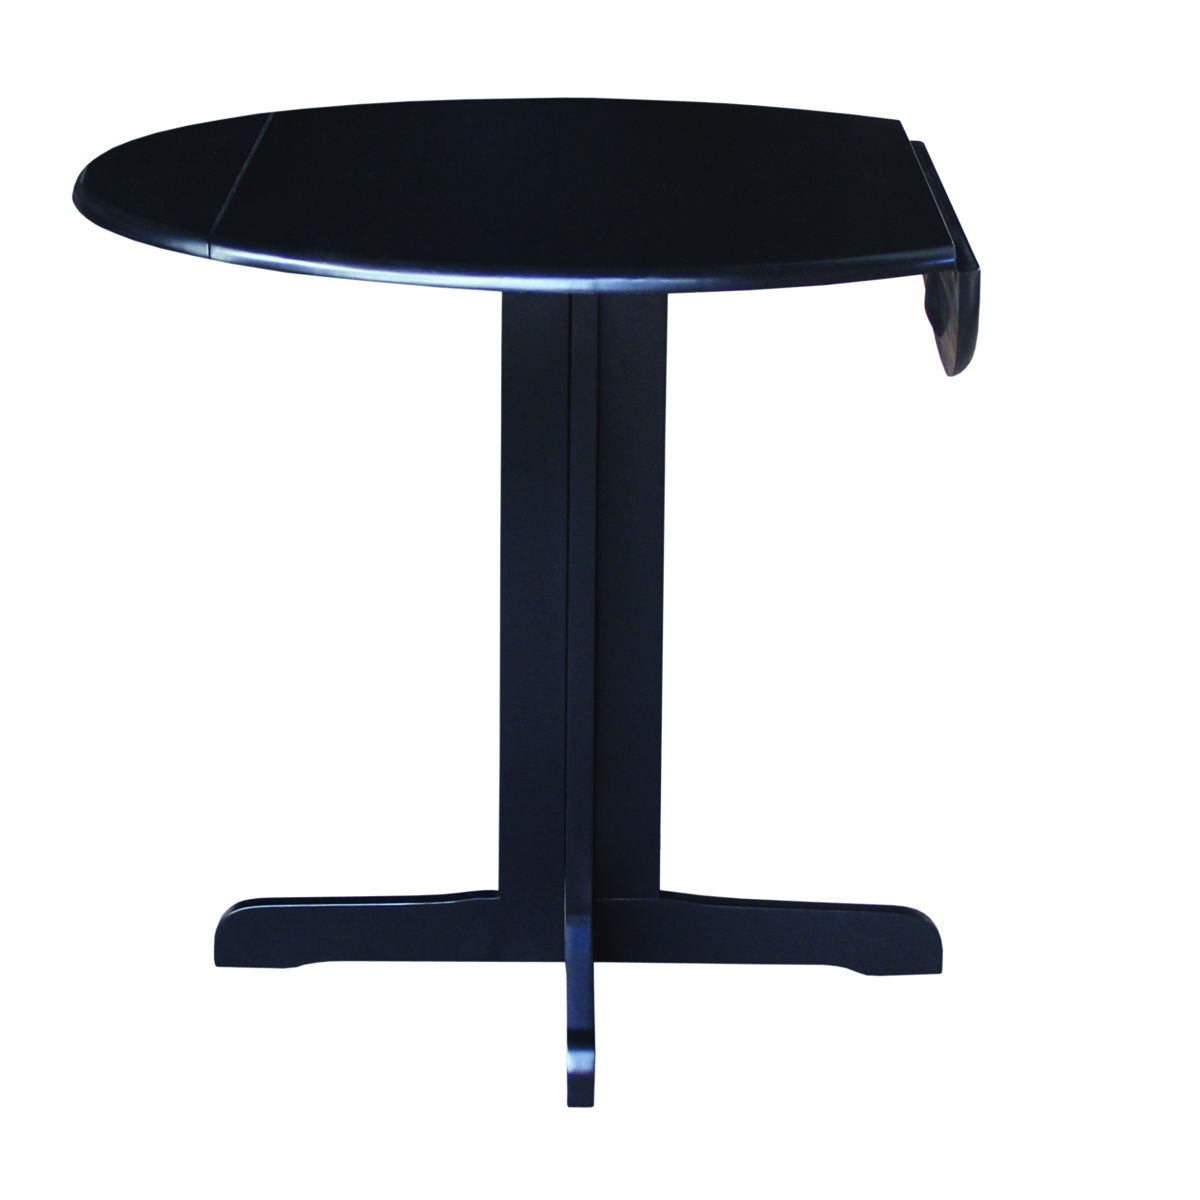 John Thomas Round Dropleaf Pedestal Table In Black T46 36RP